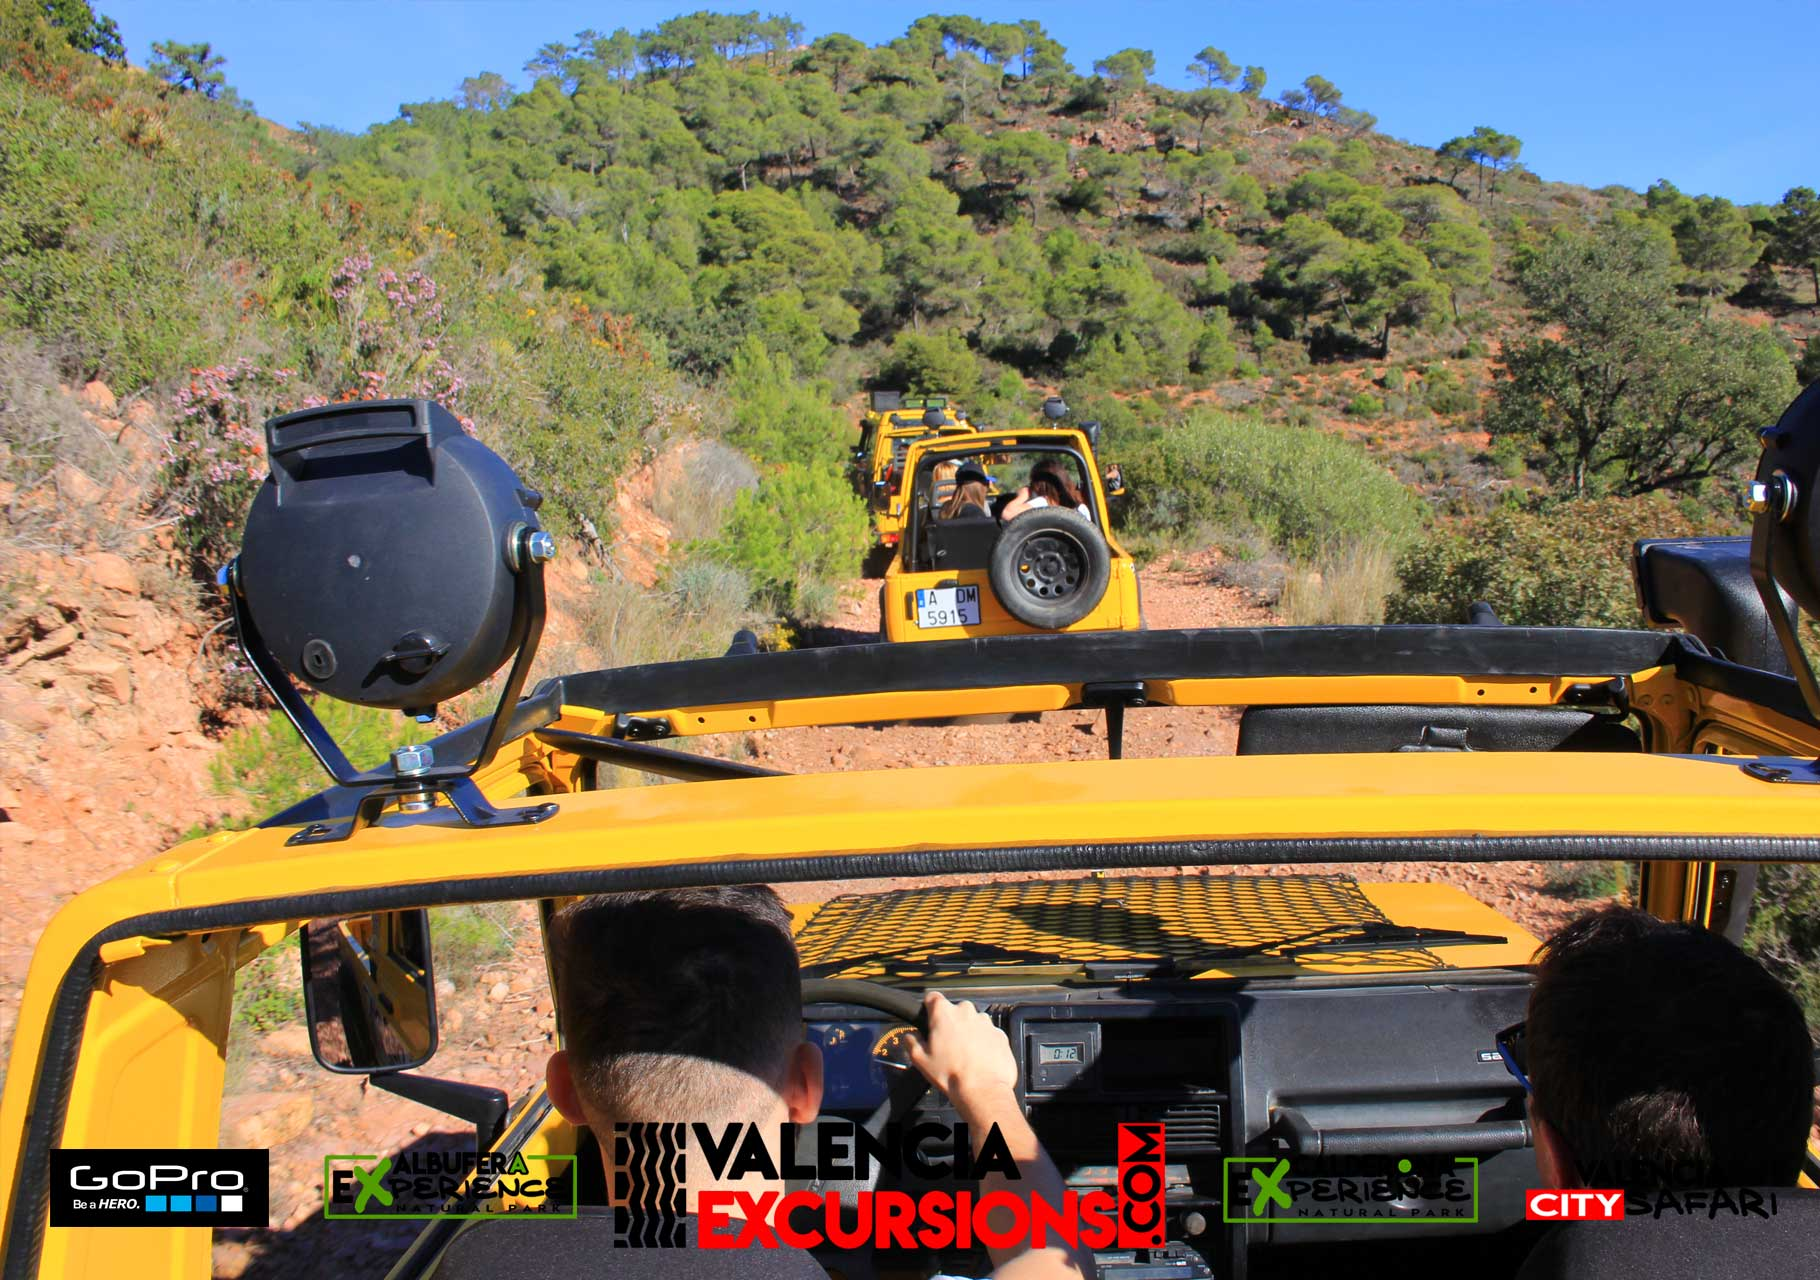 Calderona adventure with 4x4 jeeps in a guided tour. Offroad excursion with cabriolet jeeps in Valencia